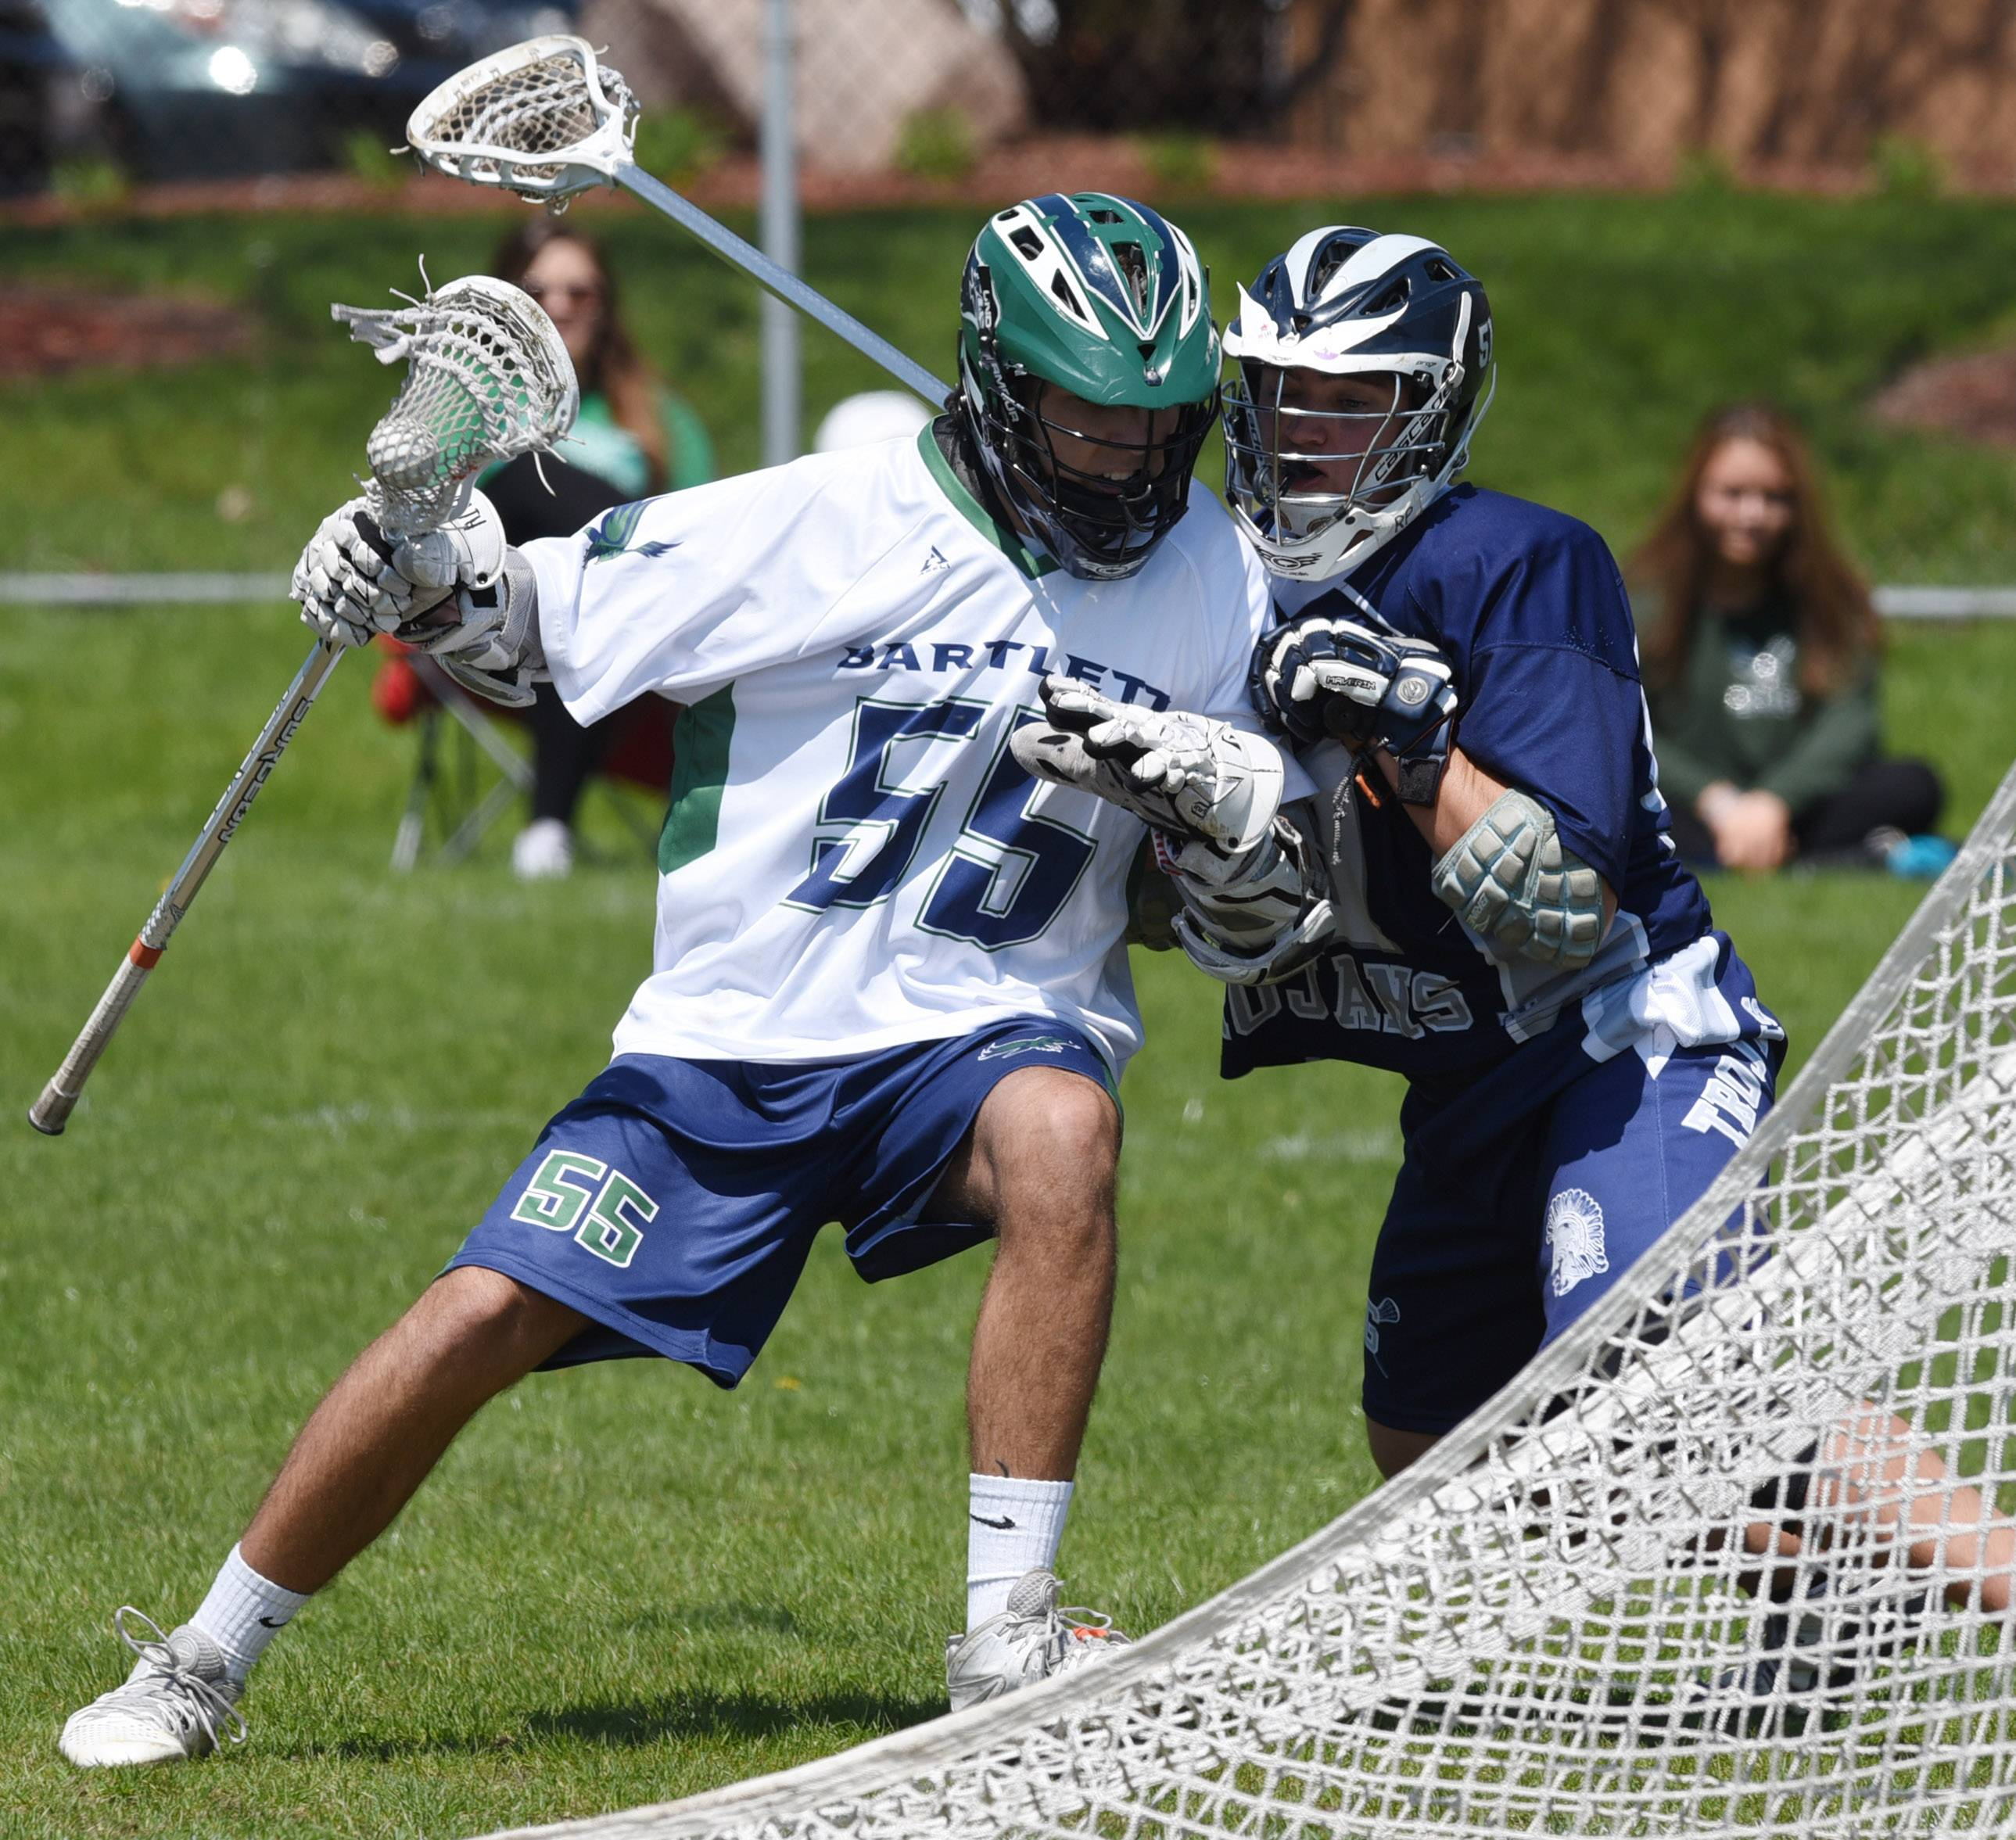 Bartlett's Anthony DiPerte makes a move toward the net during Saturday's lacrosse game against Cary-Grove. The Illinois High School Association will officially recognize lacrosse as a sport beginning in 2018.